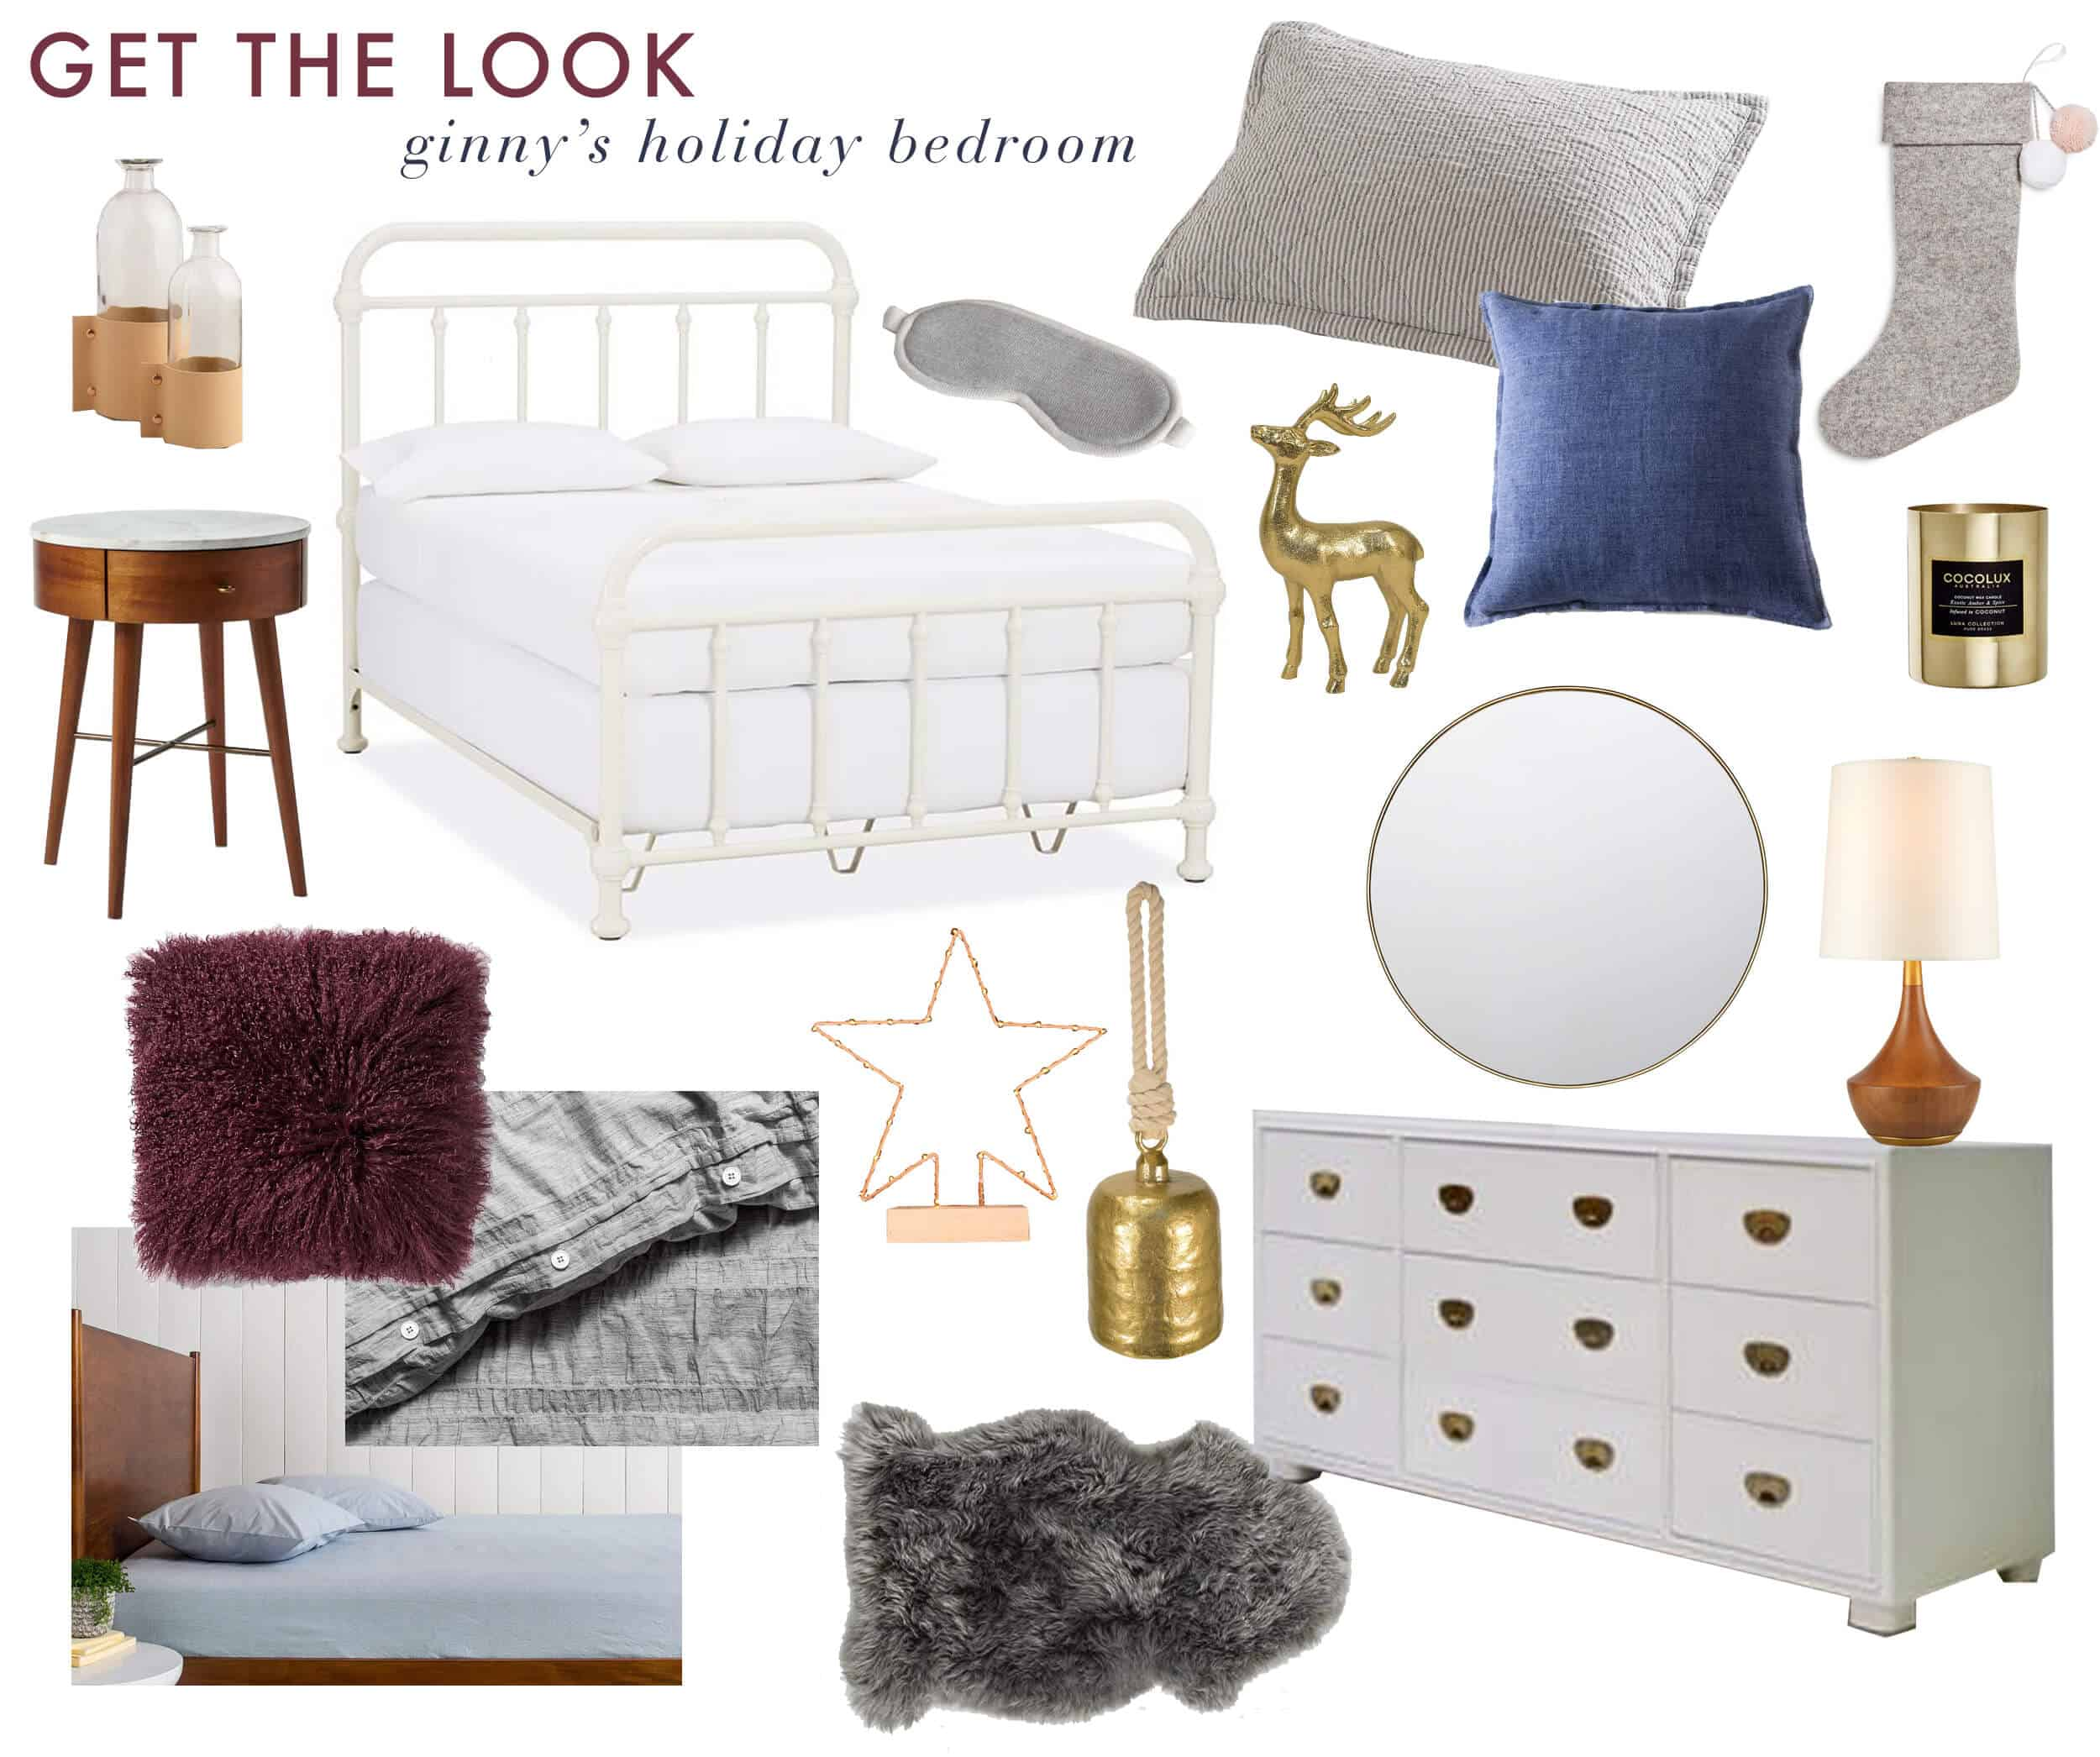 emily-henderson_holiday_bedroom_ginny-macdonald_get-the-look